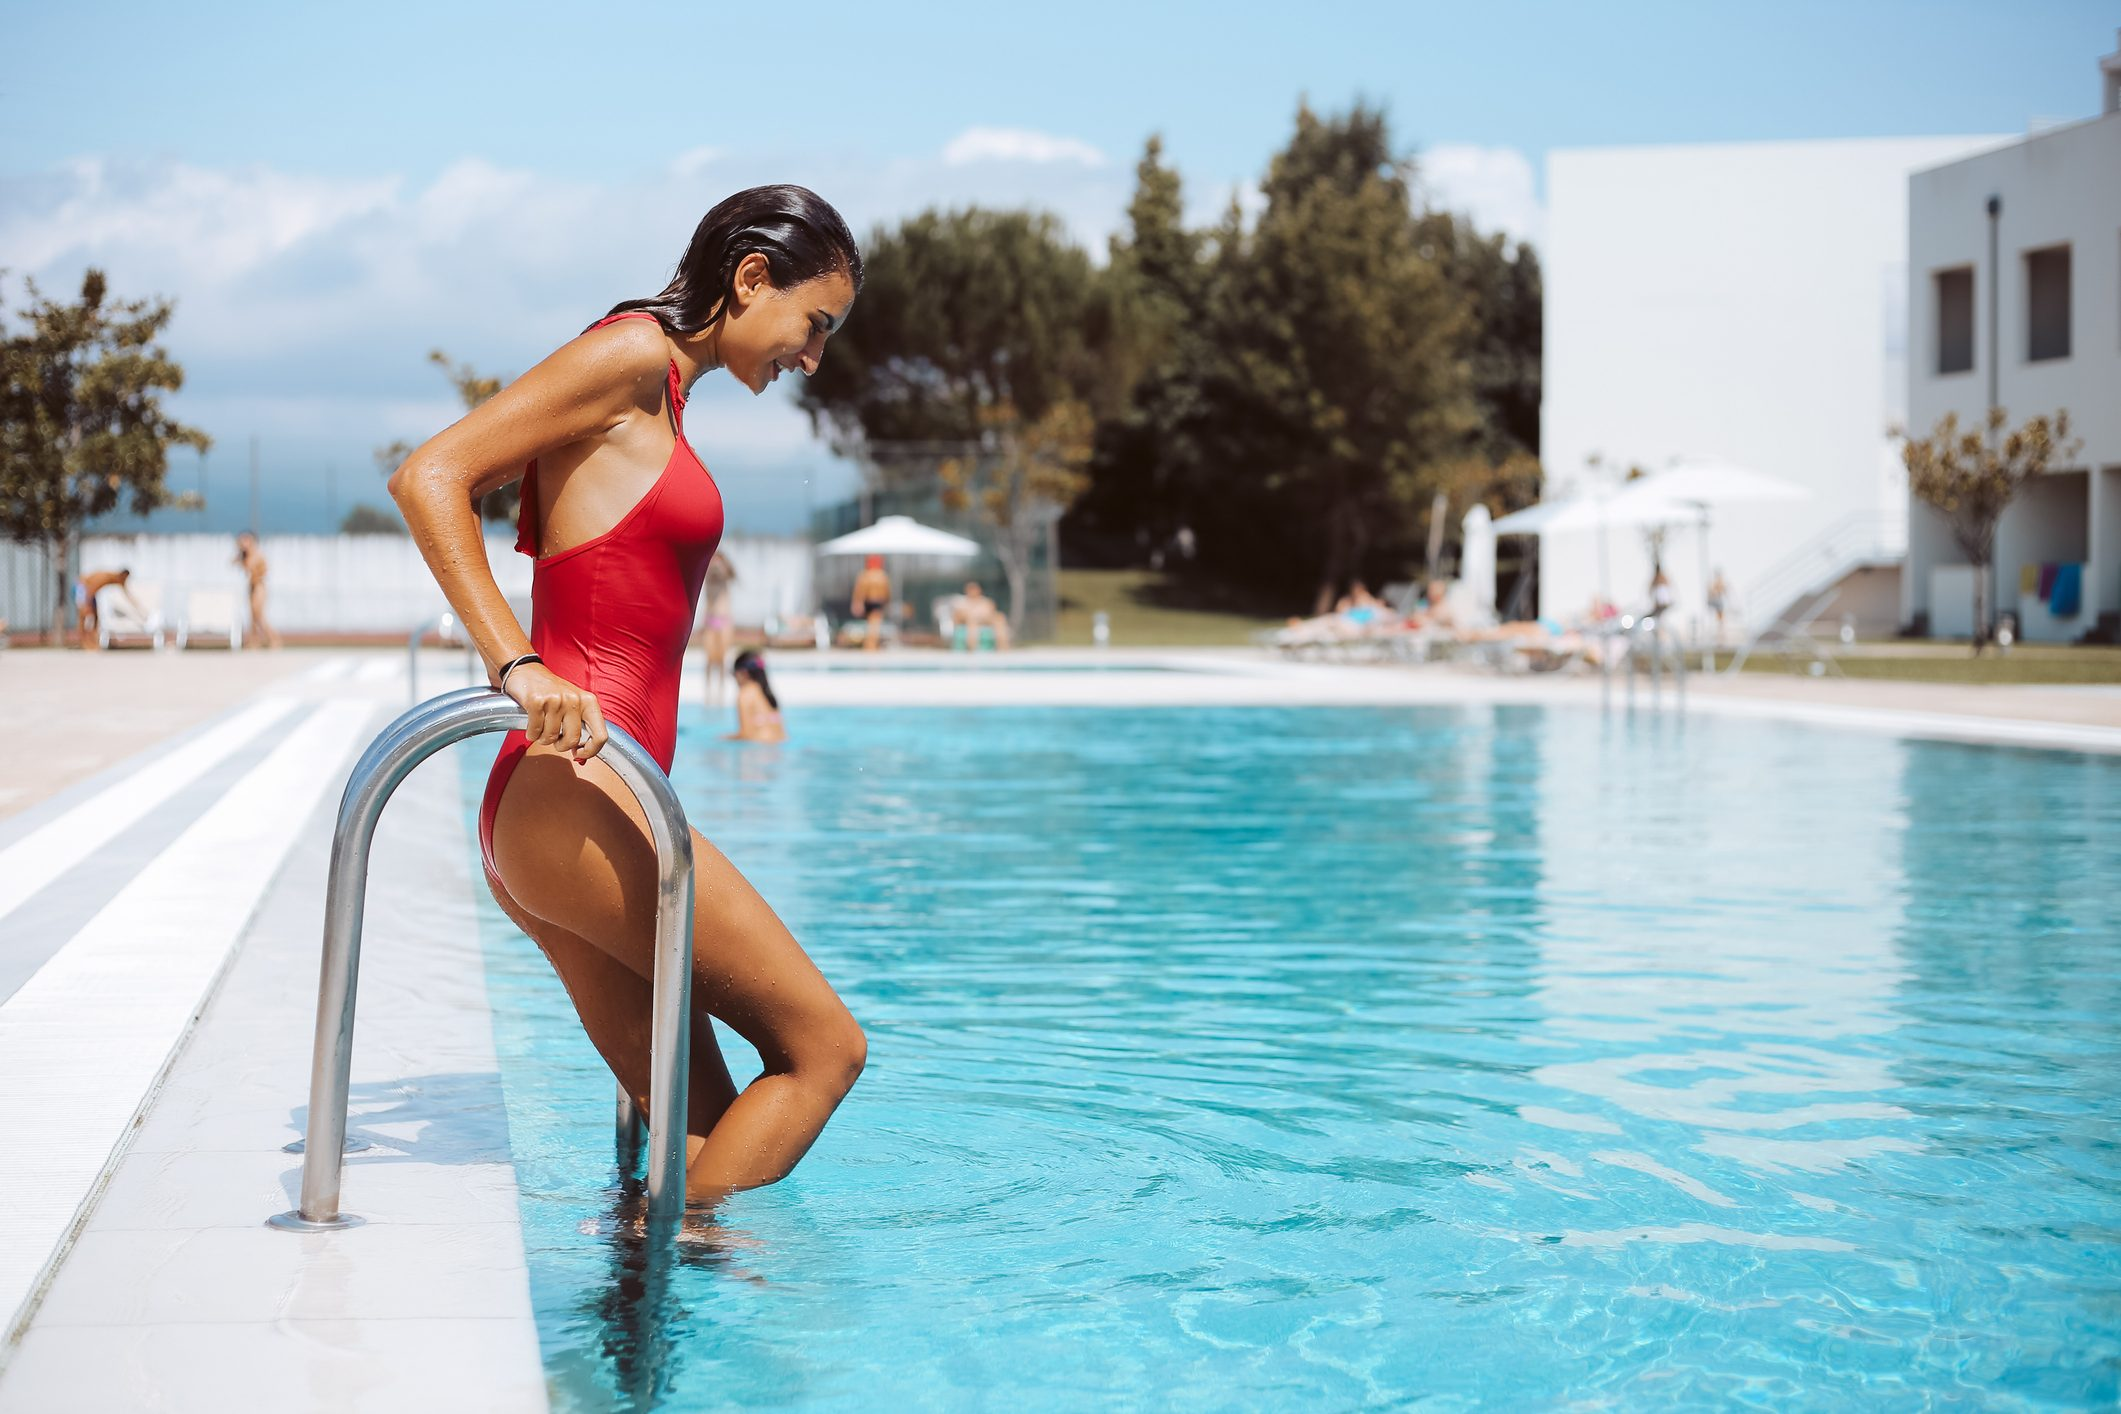 woman getting into swimming pool from ladder| catch coronavirus from swimming